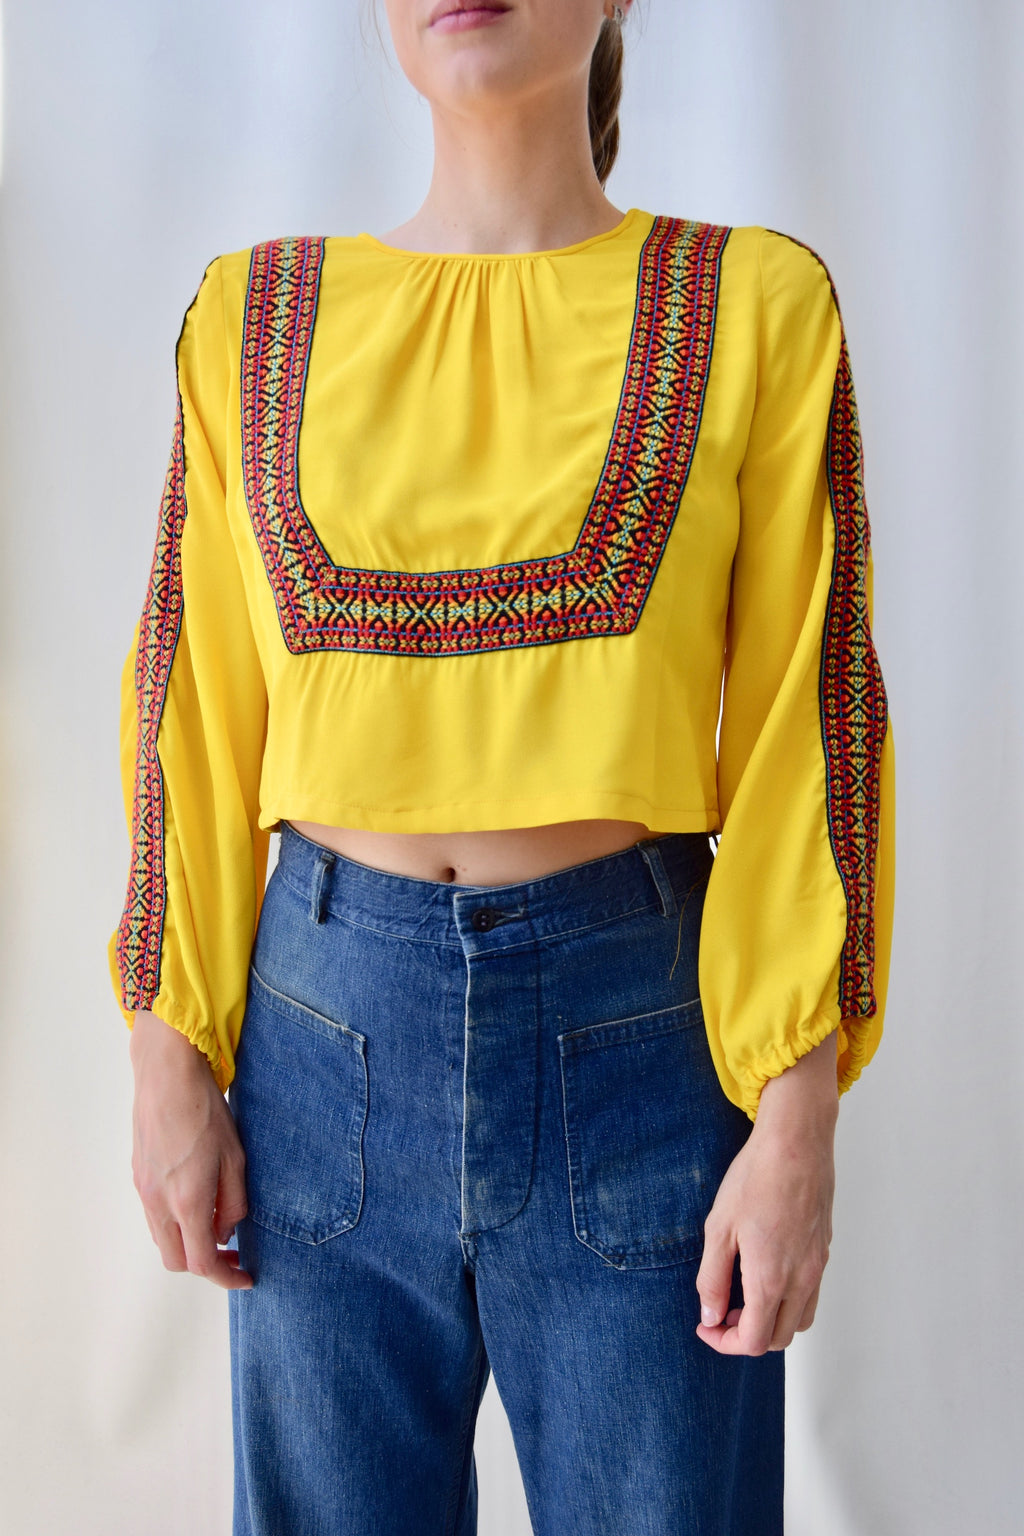 70's Ribbon Community Crop top